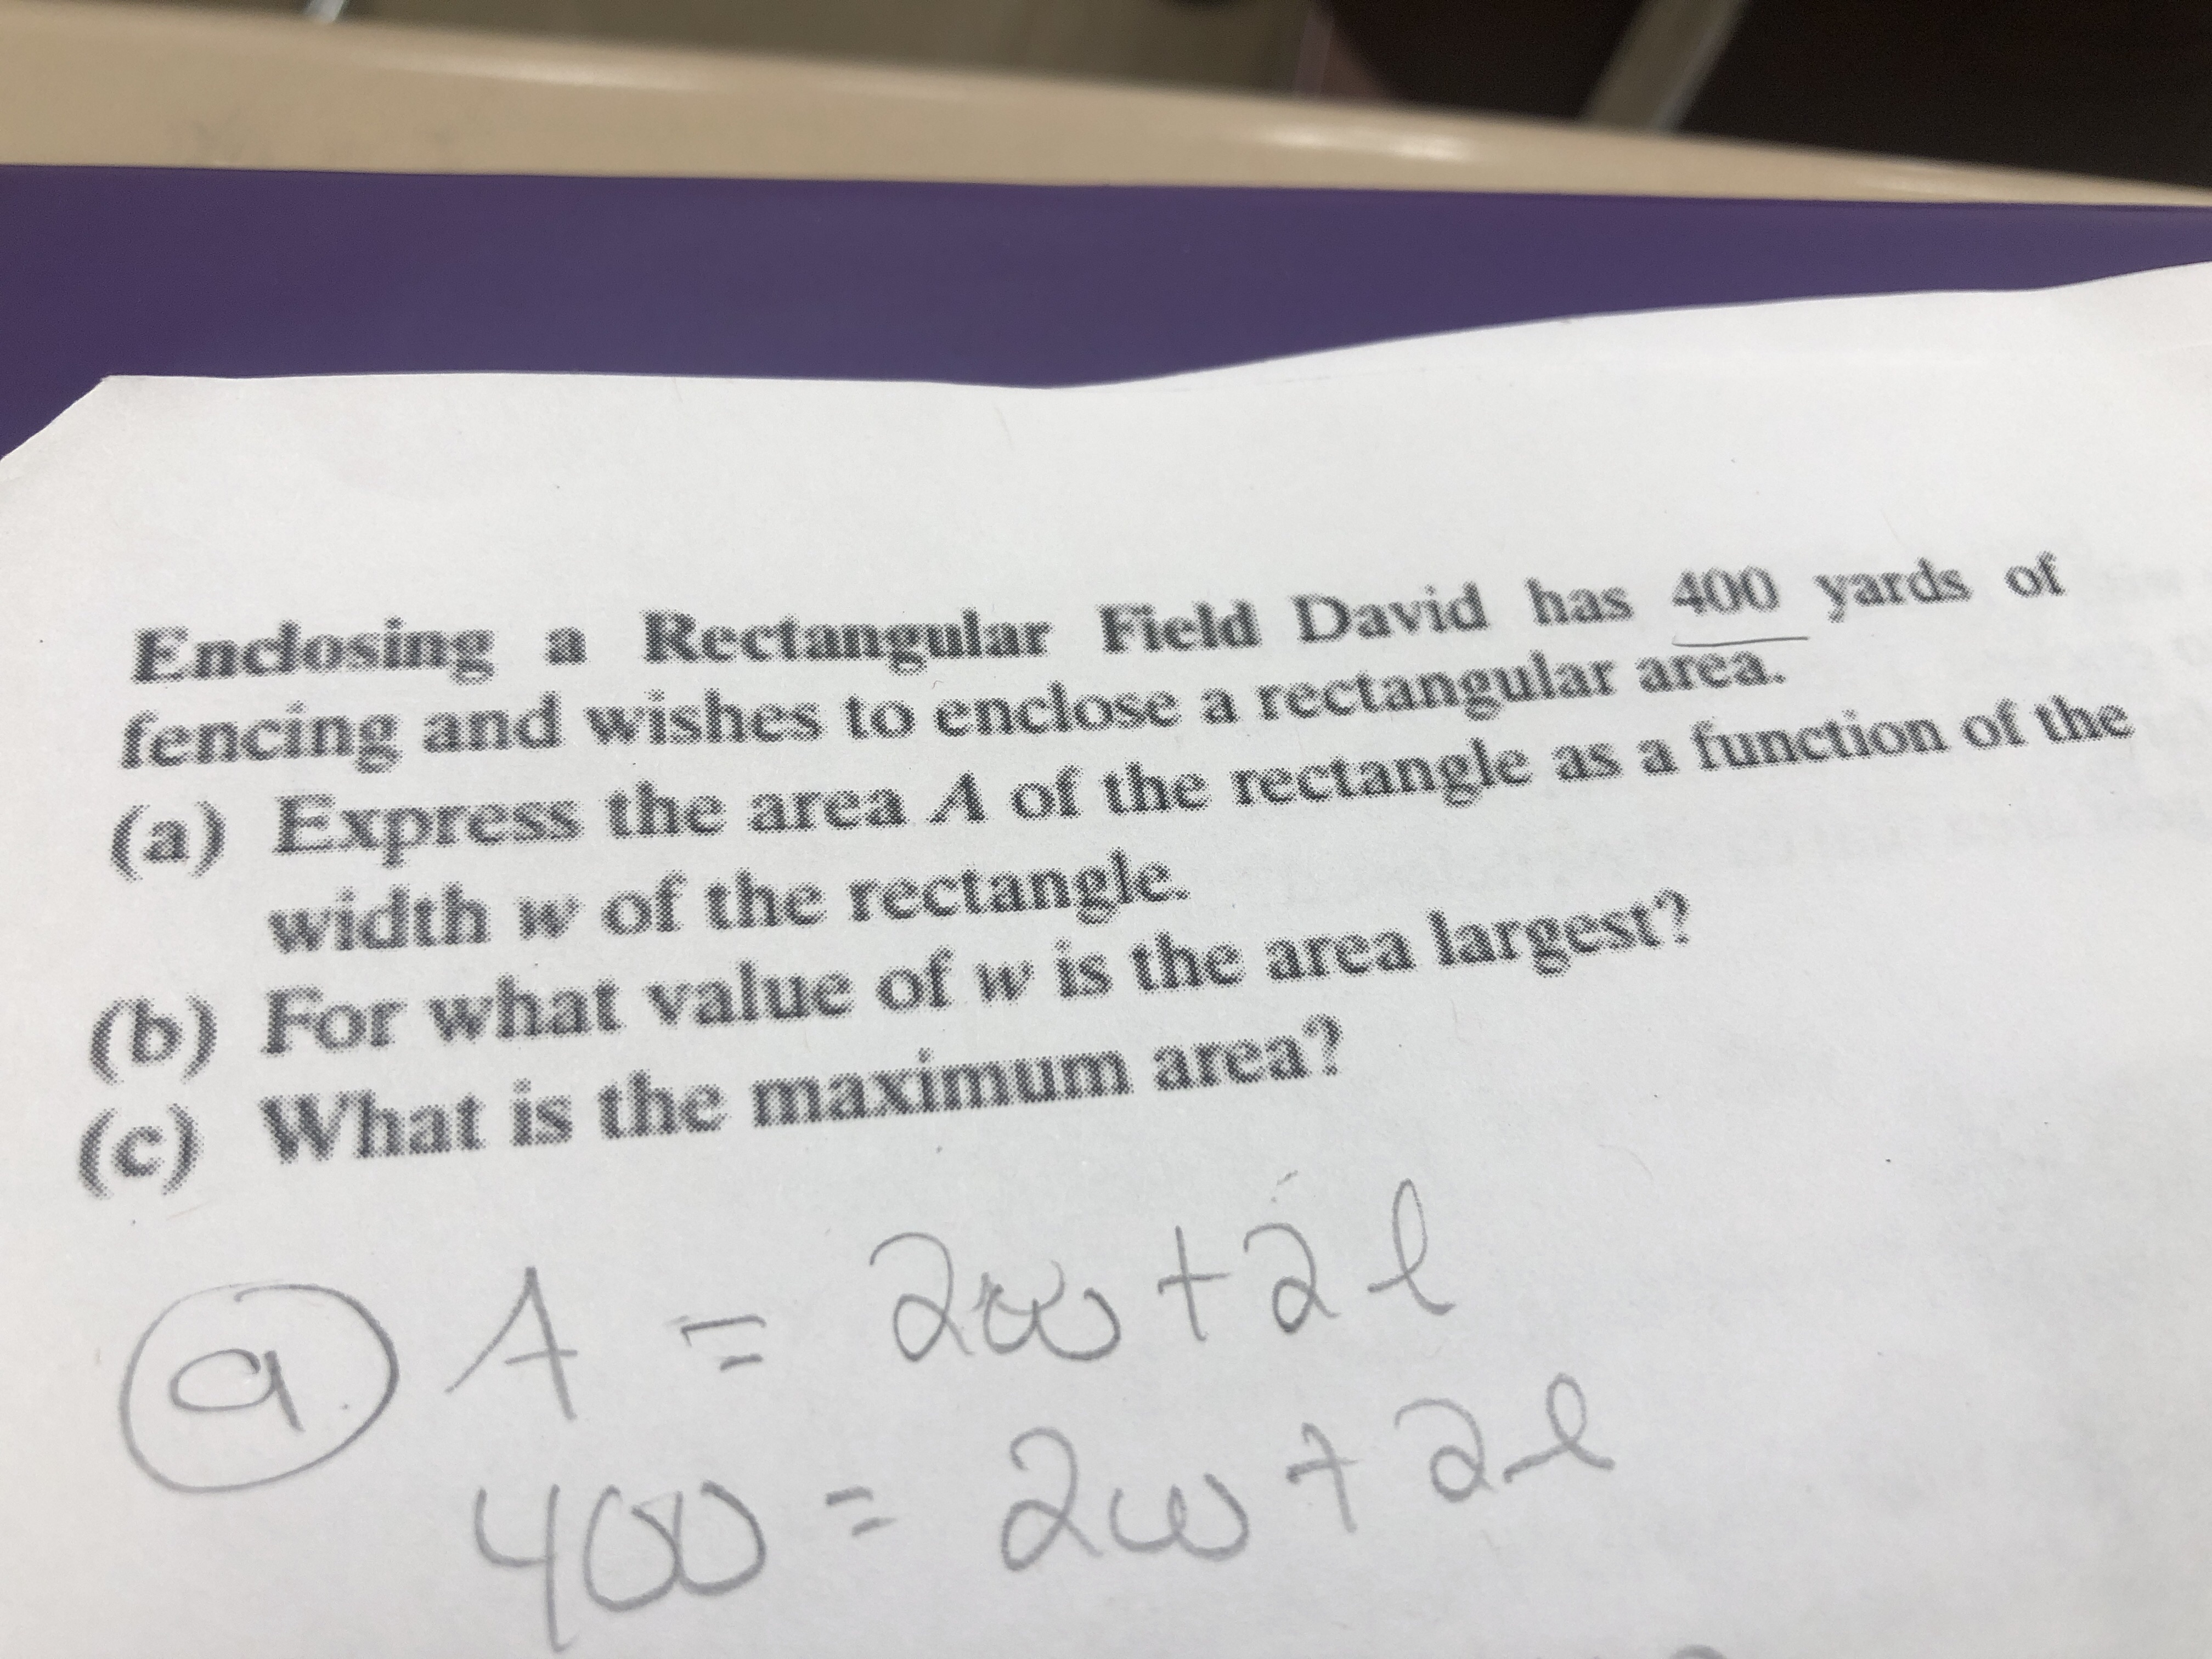 Enclosing a Rectangular Field David has 400 yards of fencing and wishes to enclose a rectangular area. (a) Express the area A of the rectangle as a function of the width w of the rectangle. (b) For what value of w is the area largest? (c) What is the maximum area? A aestal YOD-austa 400